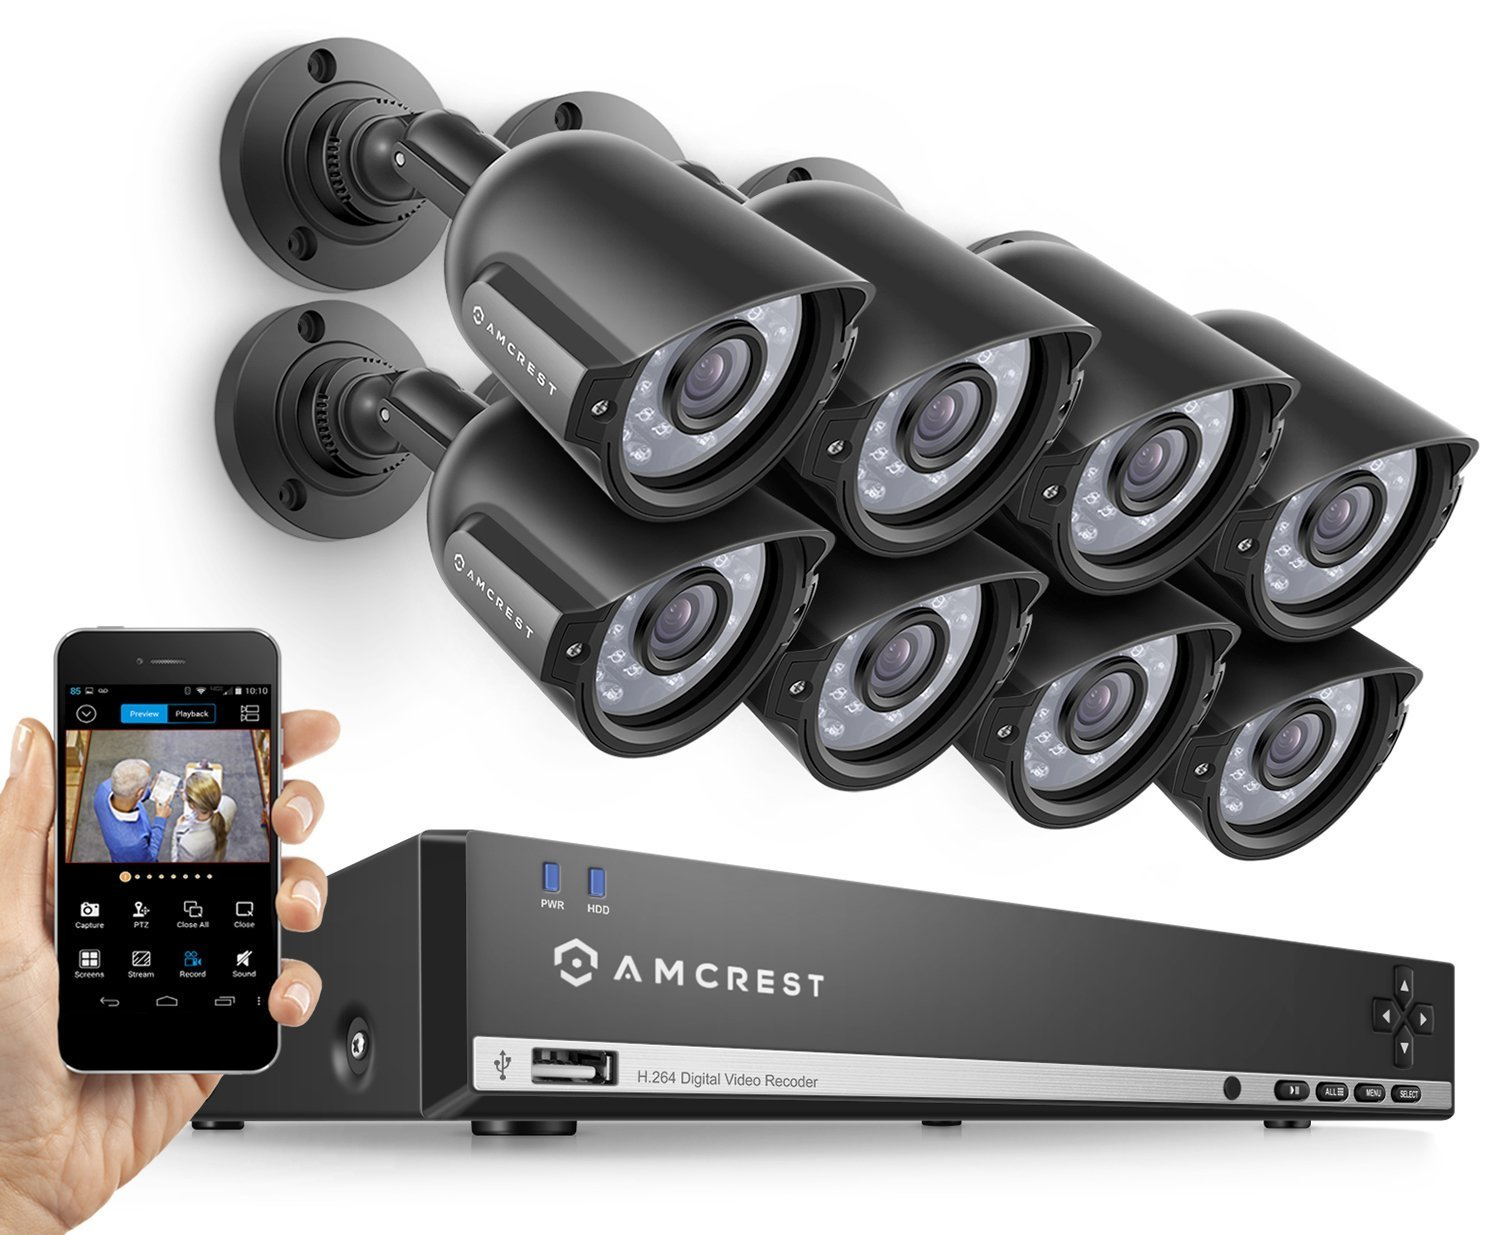 Amcrest AMDV960H8-8B 8CH 1TB DVR Security Camera System